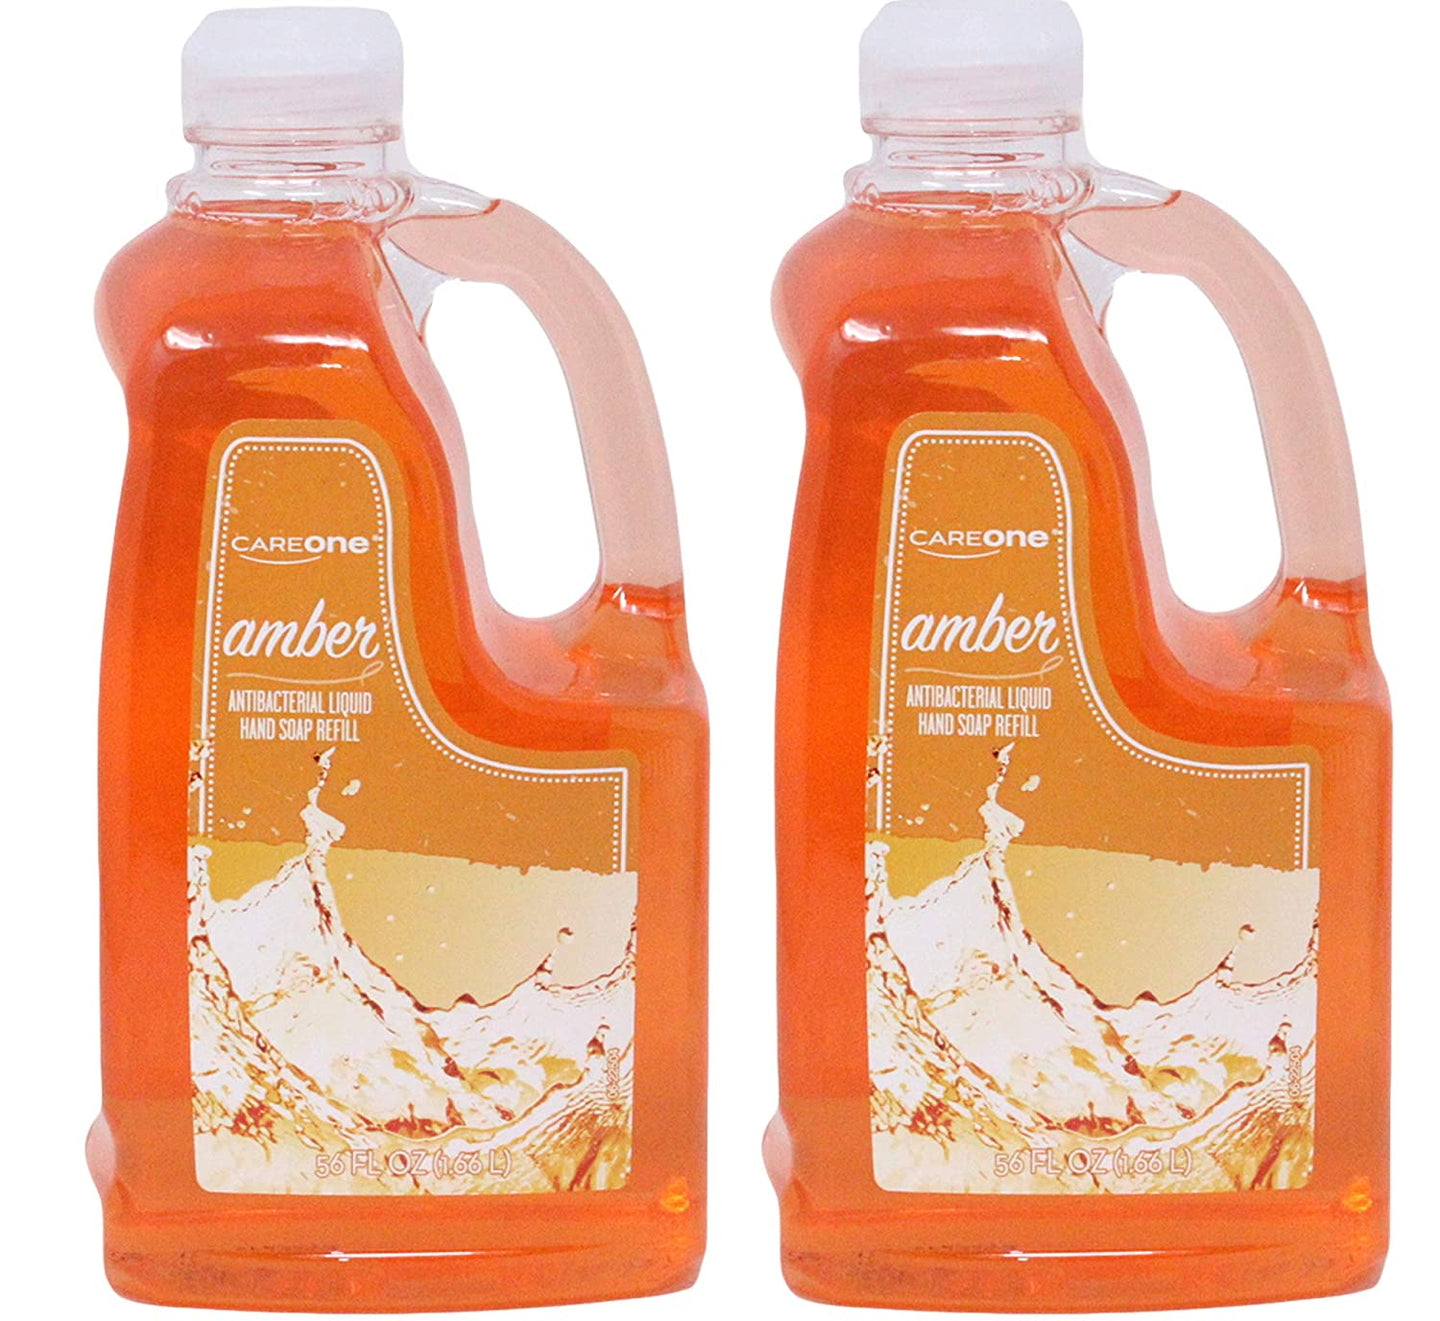 Amber Care One Antibacterial Liquid Hand Soap Refill, 56 Ounces (Pack of 2)